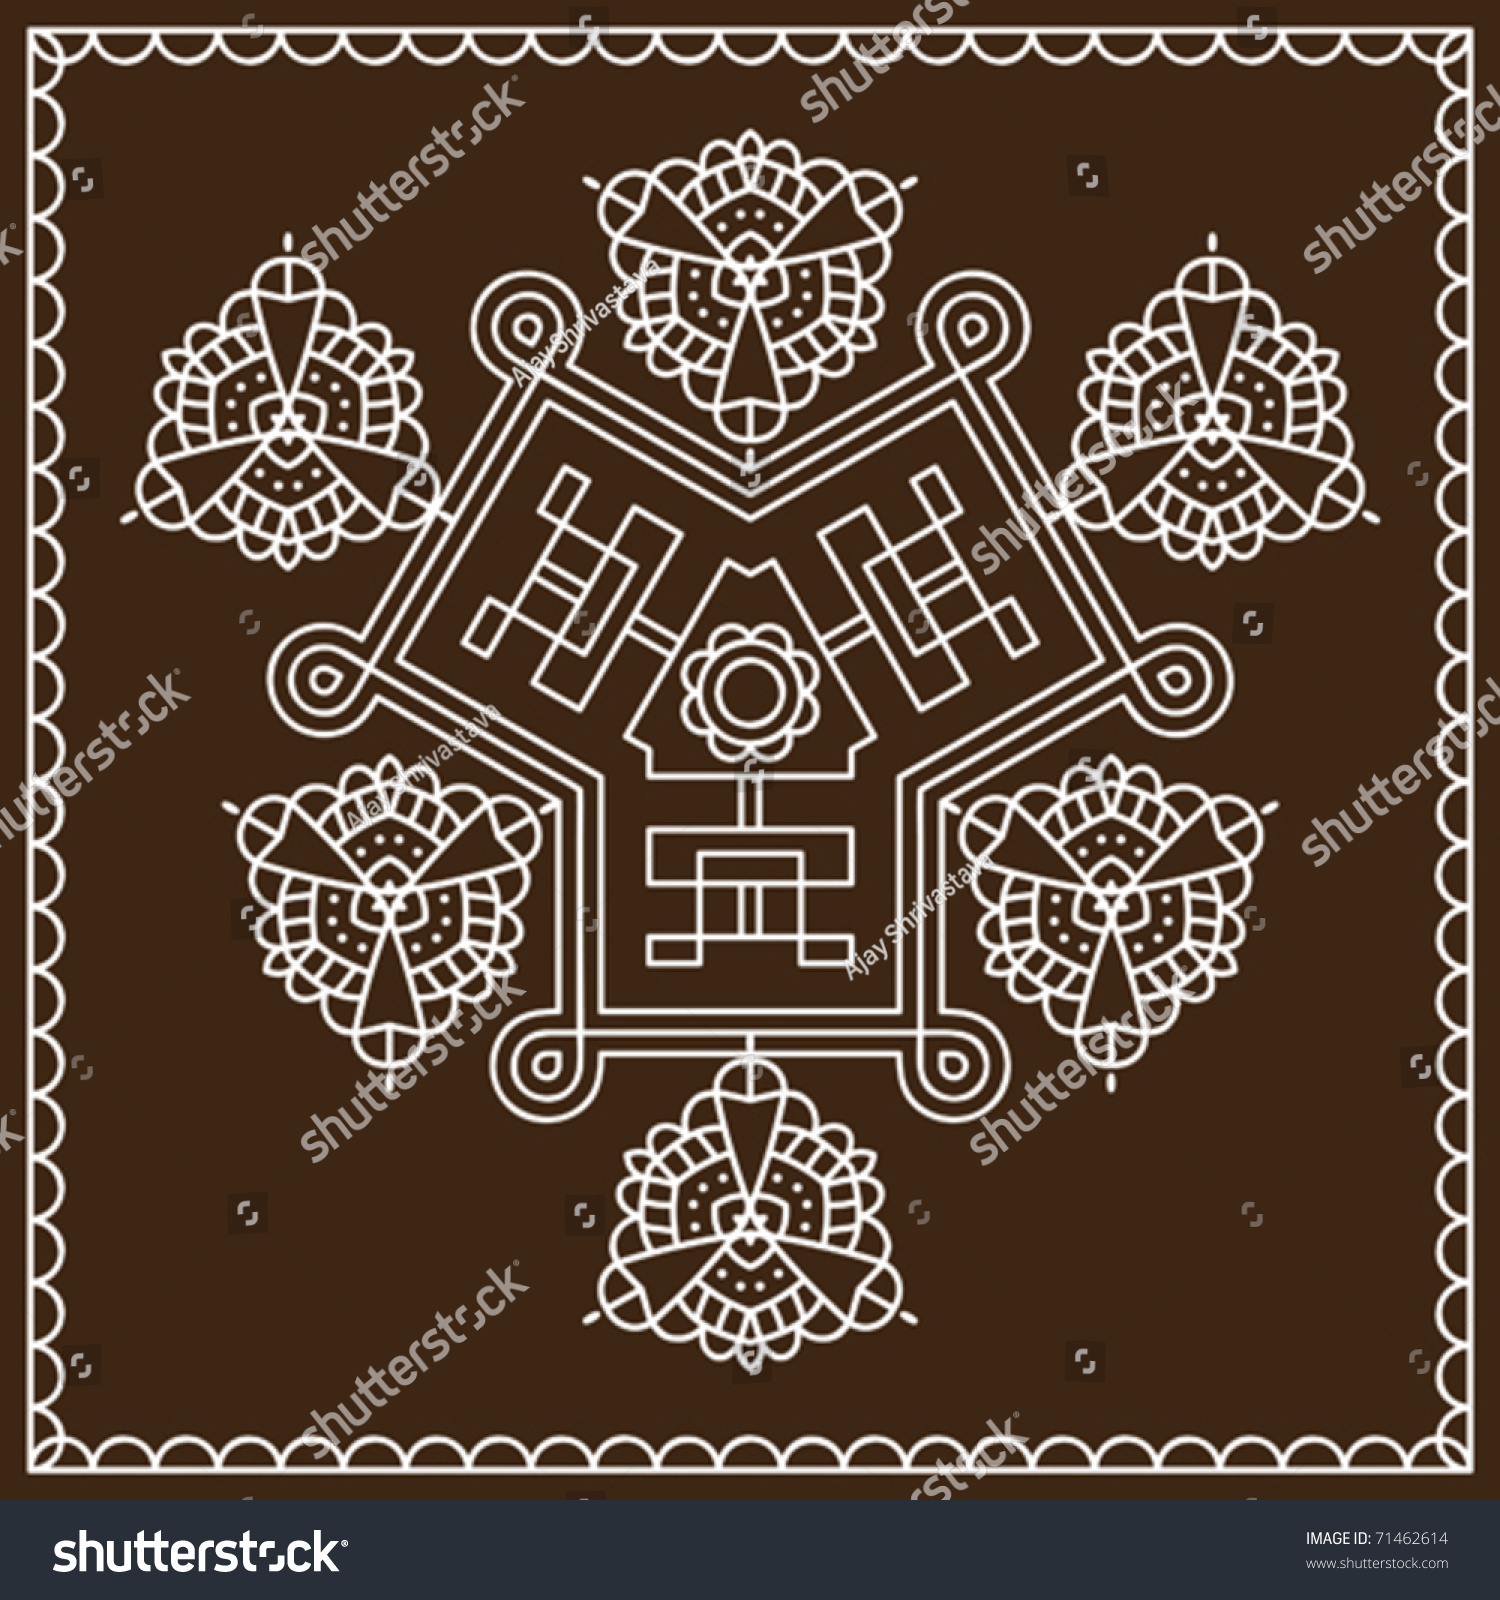 folk tribal designs motif wall painting stock vector illustration 71462614 shutterstock. Black Bedroom Furniture Sets. Home Design Ideas